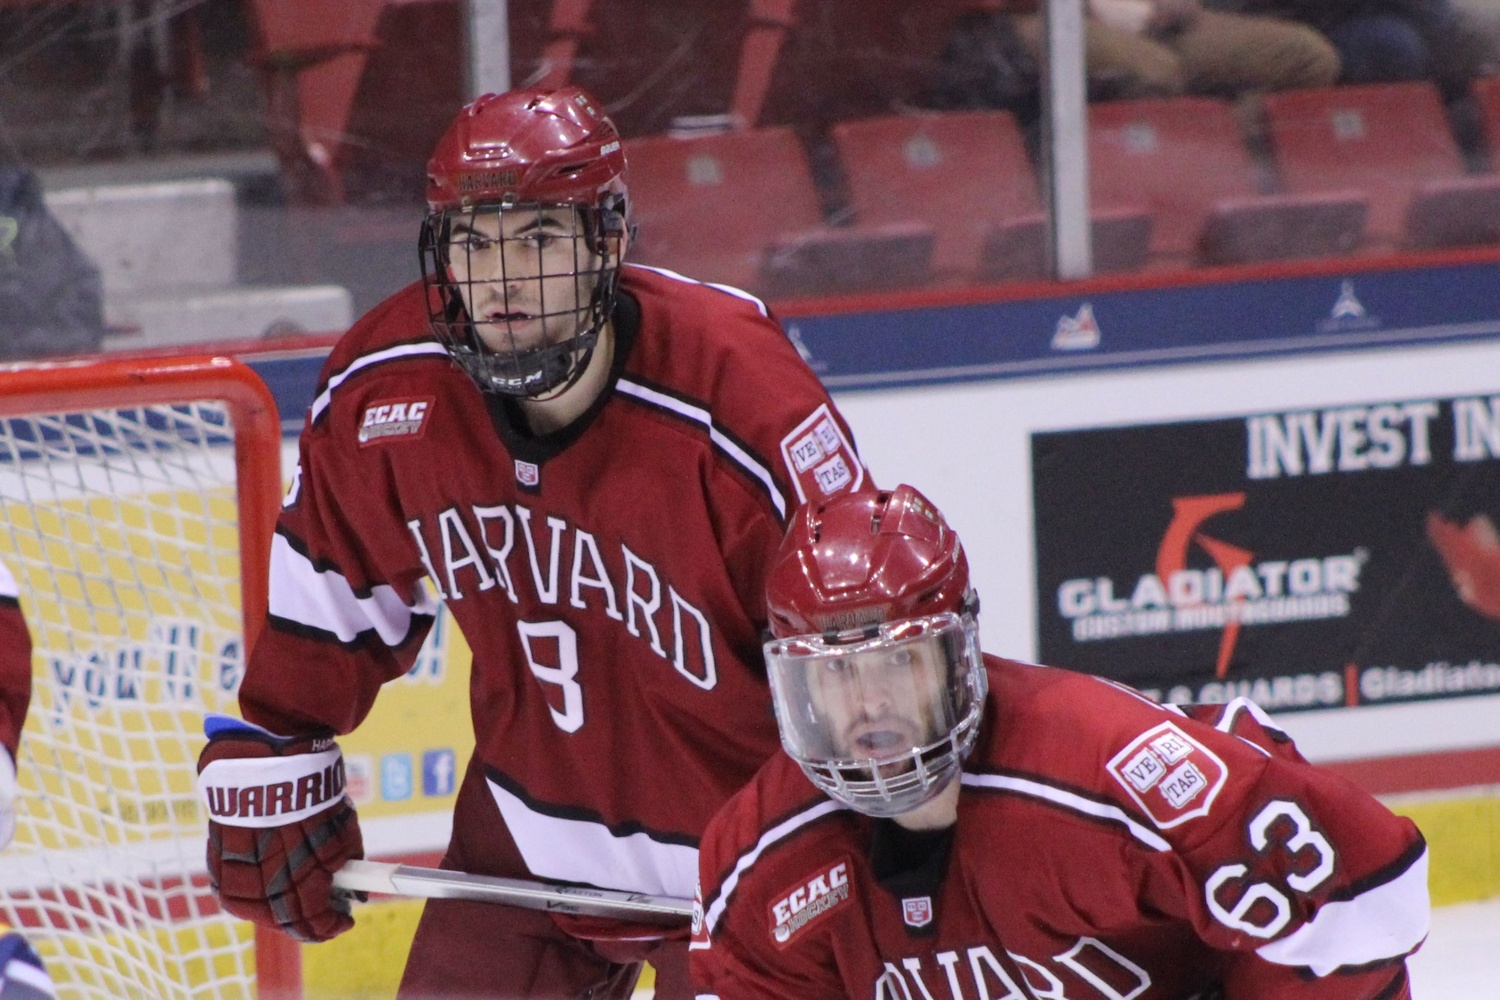 Defenseman Patrick McNally (left) and forward Colin Blackwell will see playing time against Colgate for the first time this season in the ECAC tournament final on Saturday.